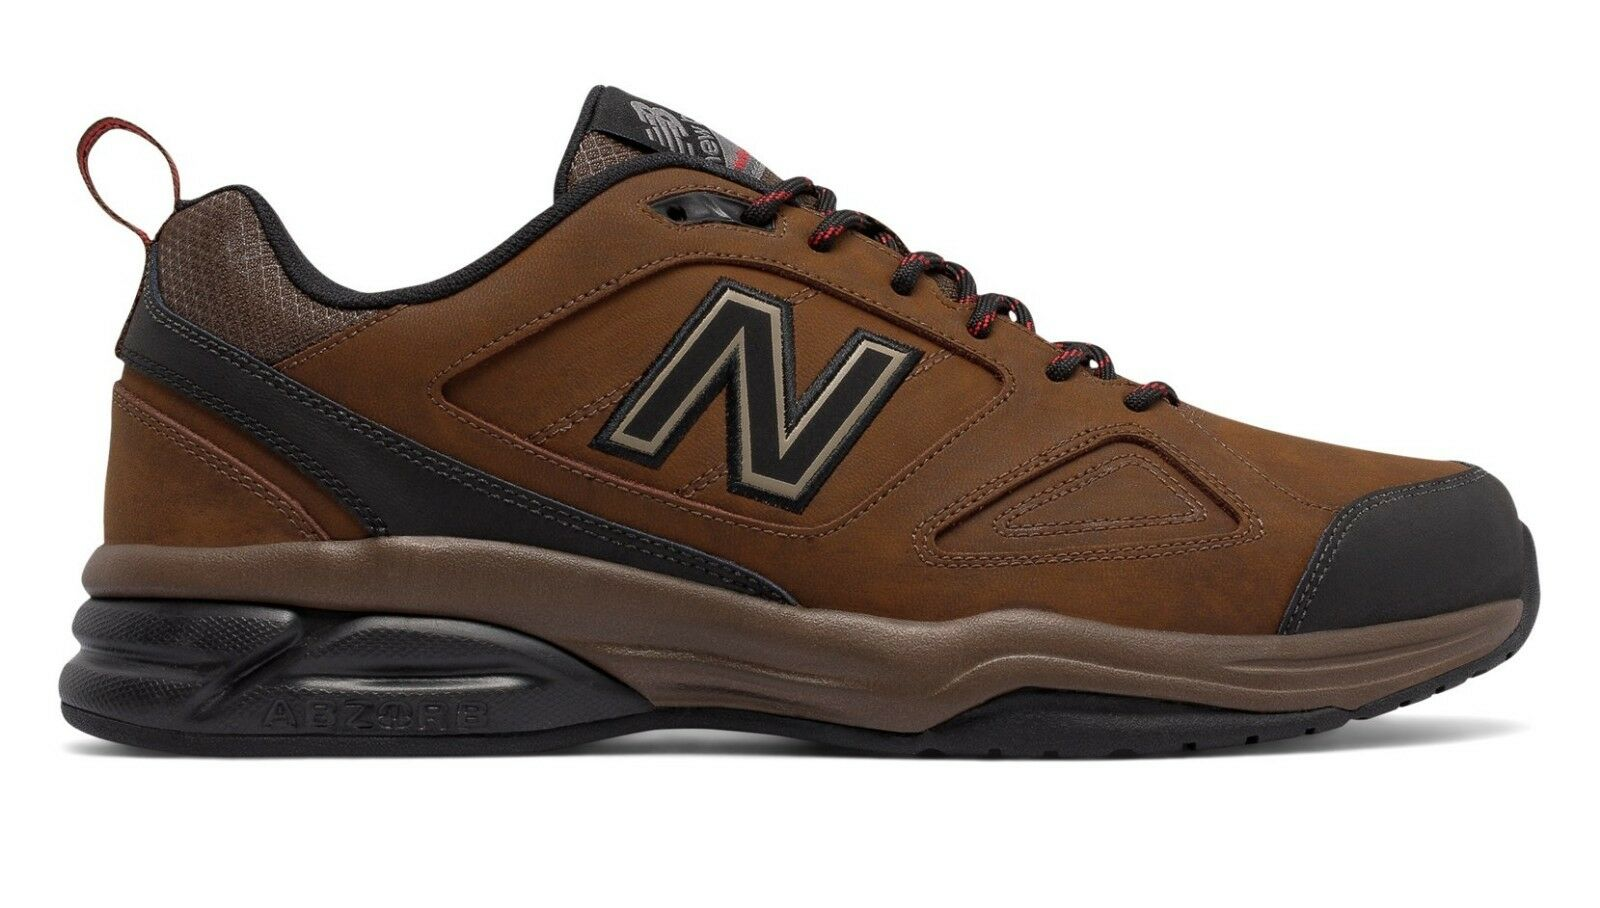 New Balance MX623LT3 Men's 623v3 Brown Leather Trainer Cushioned Training shoes